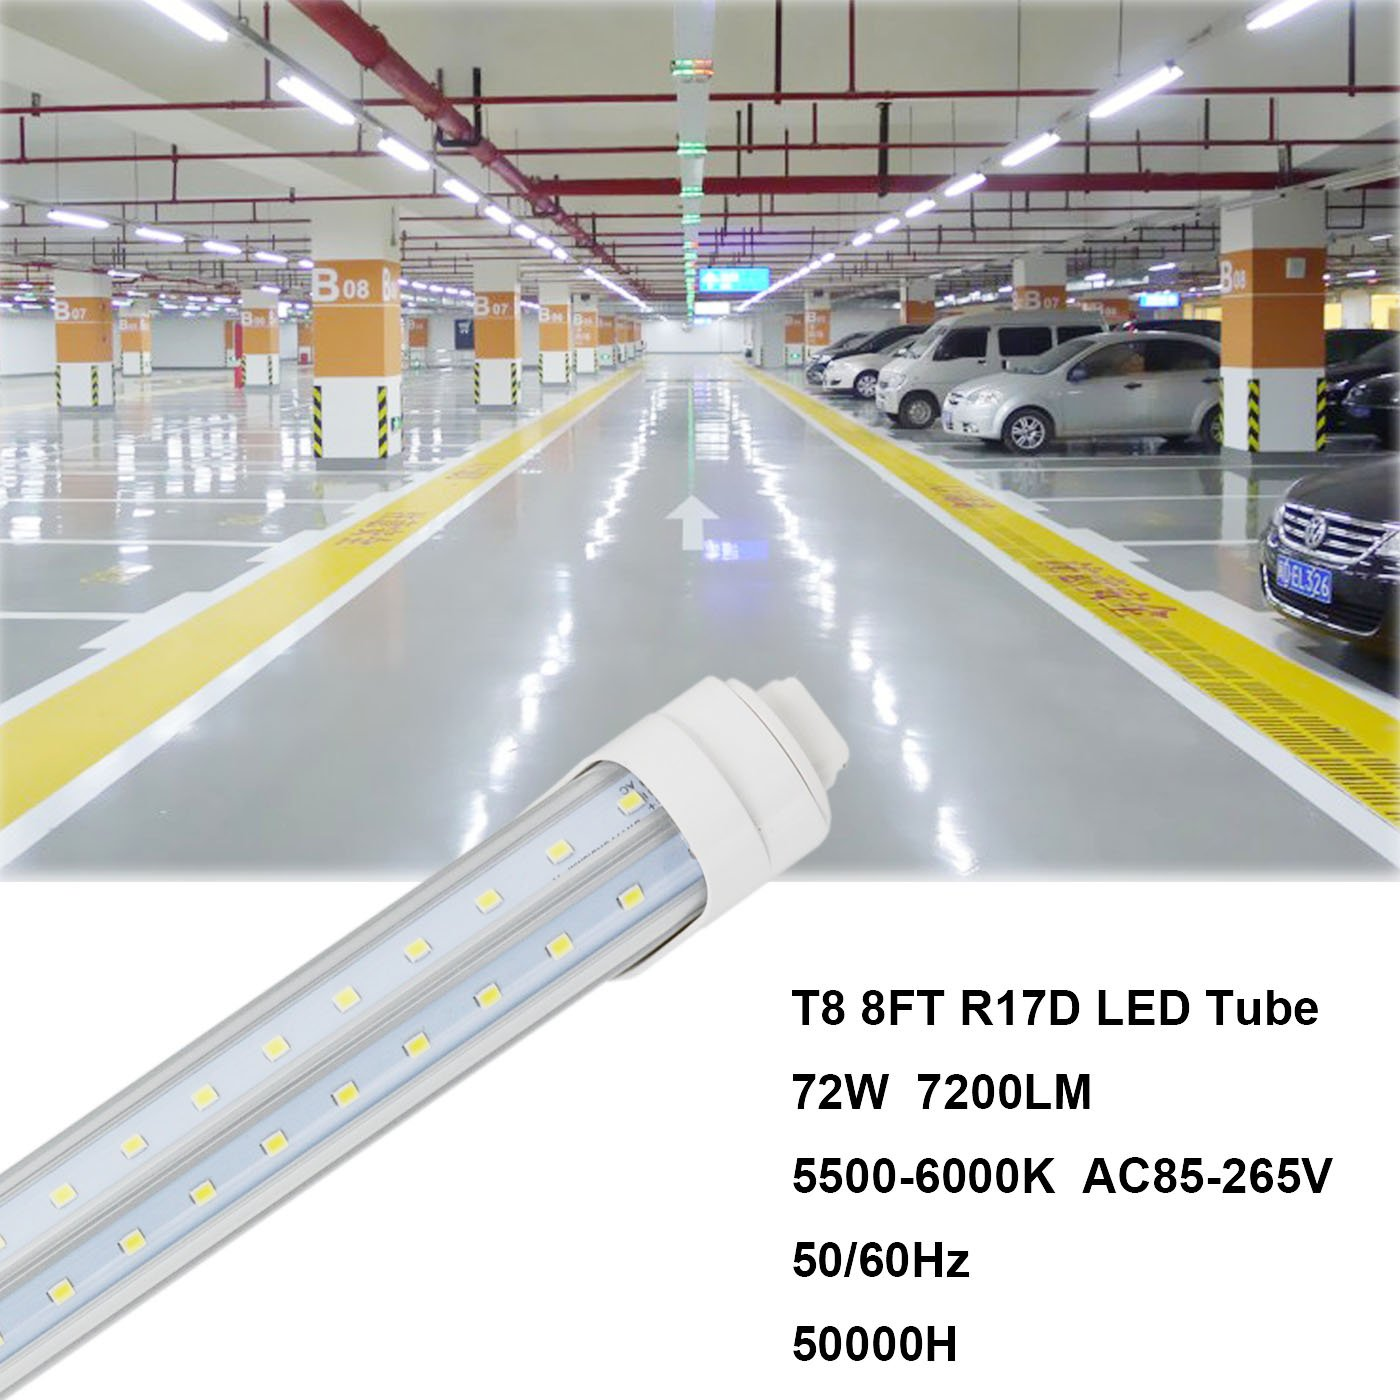 CNSUNWAY 8ft T8 LED Tube, 96'' R17D V-shaped 270° Lighting Bulbs, 6000K Cool White Clean Cover Light, Work Without Ballast (50 Pack, US Stock) by CNSUNWAY LIGHTING (Image #5)